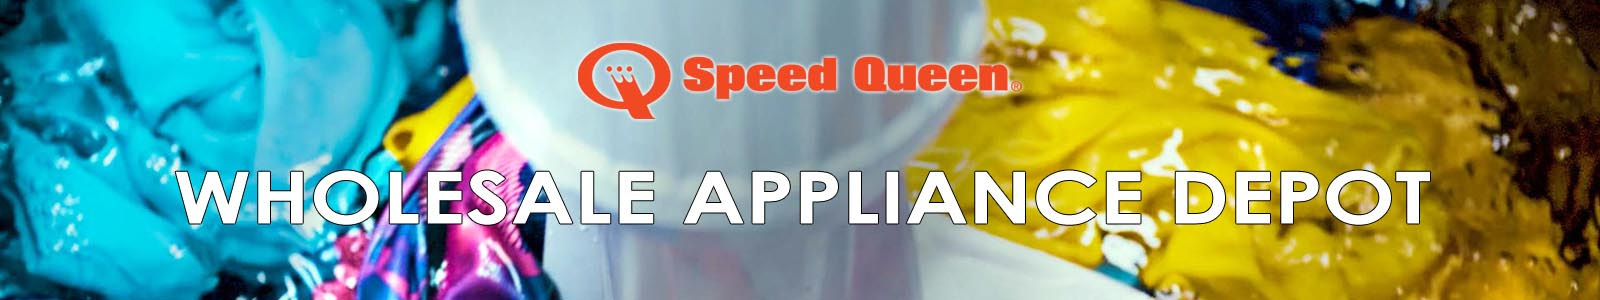 Speed Queen Built to Last 25 Years with Commercial-Grade Components